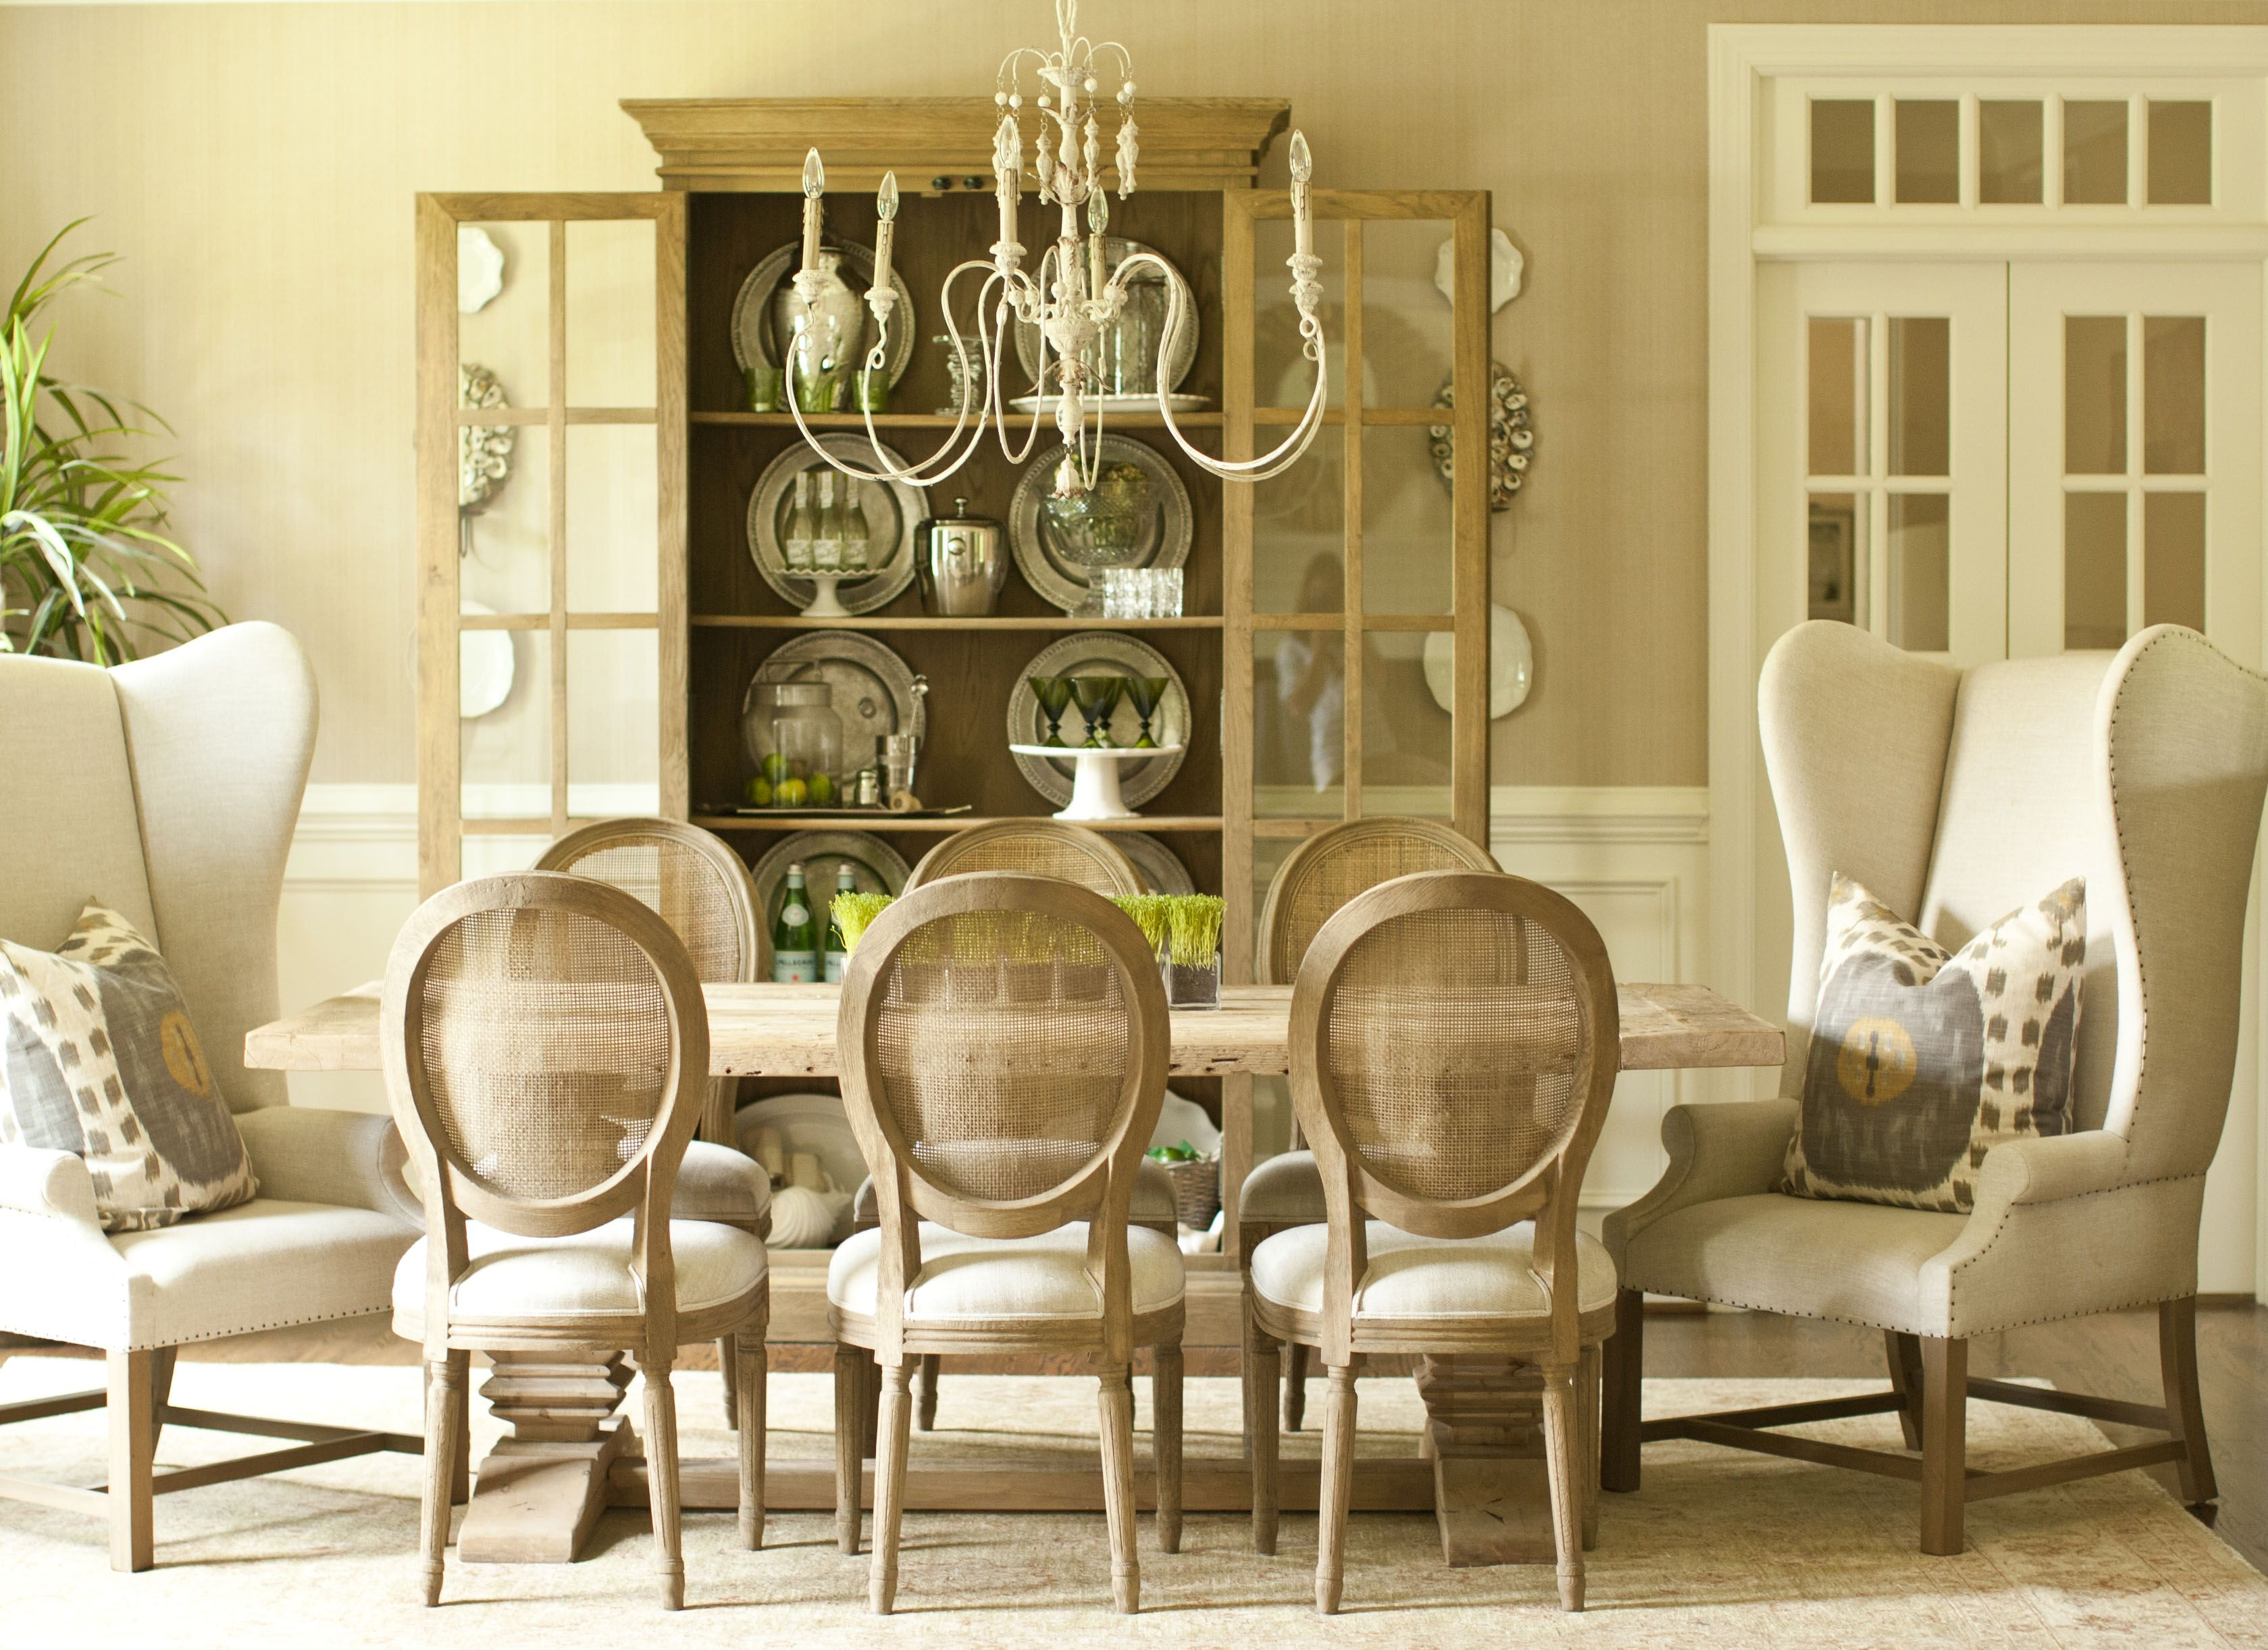 Dining Table Wood Dining Tables Oval Back Dining Chair Rustic ...